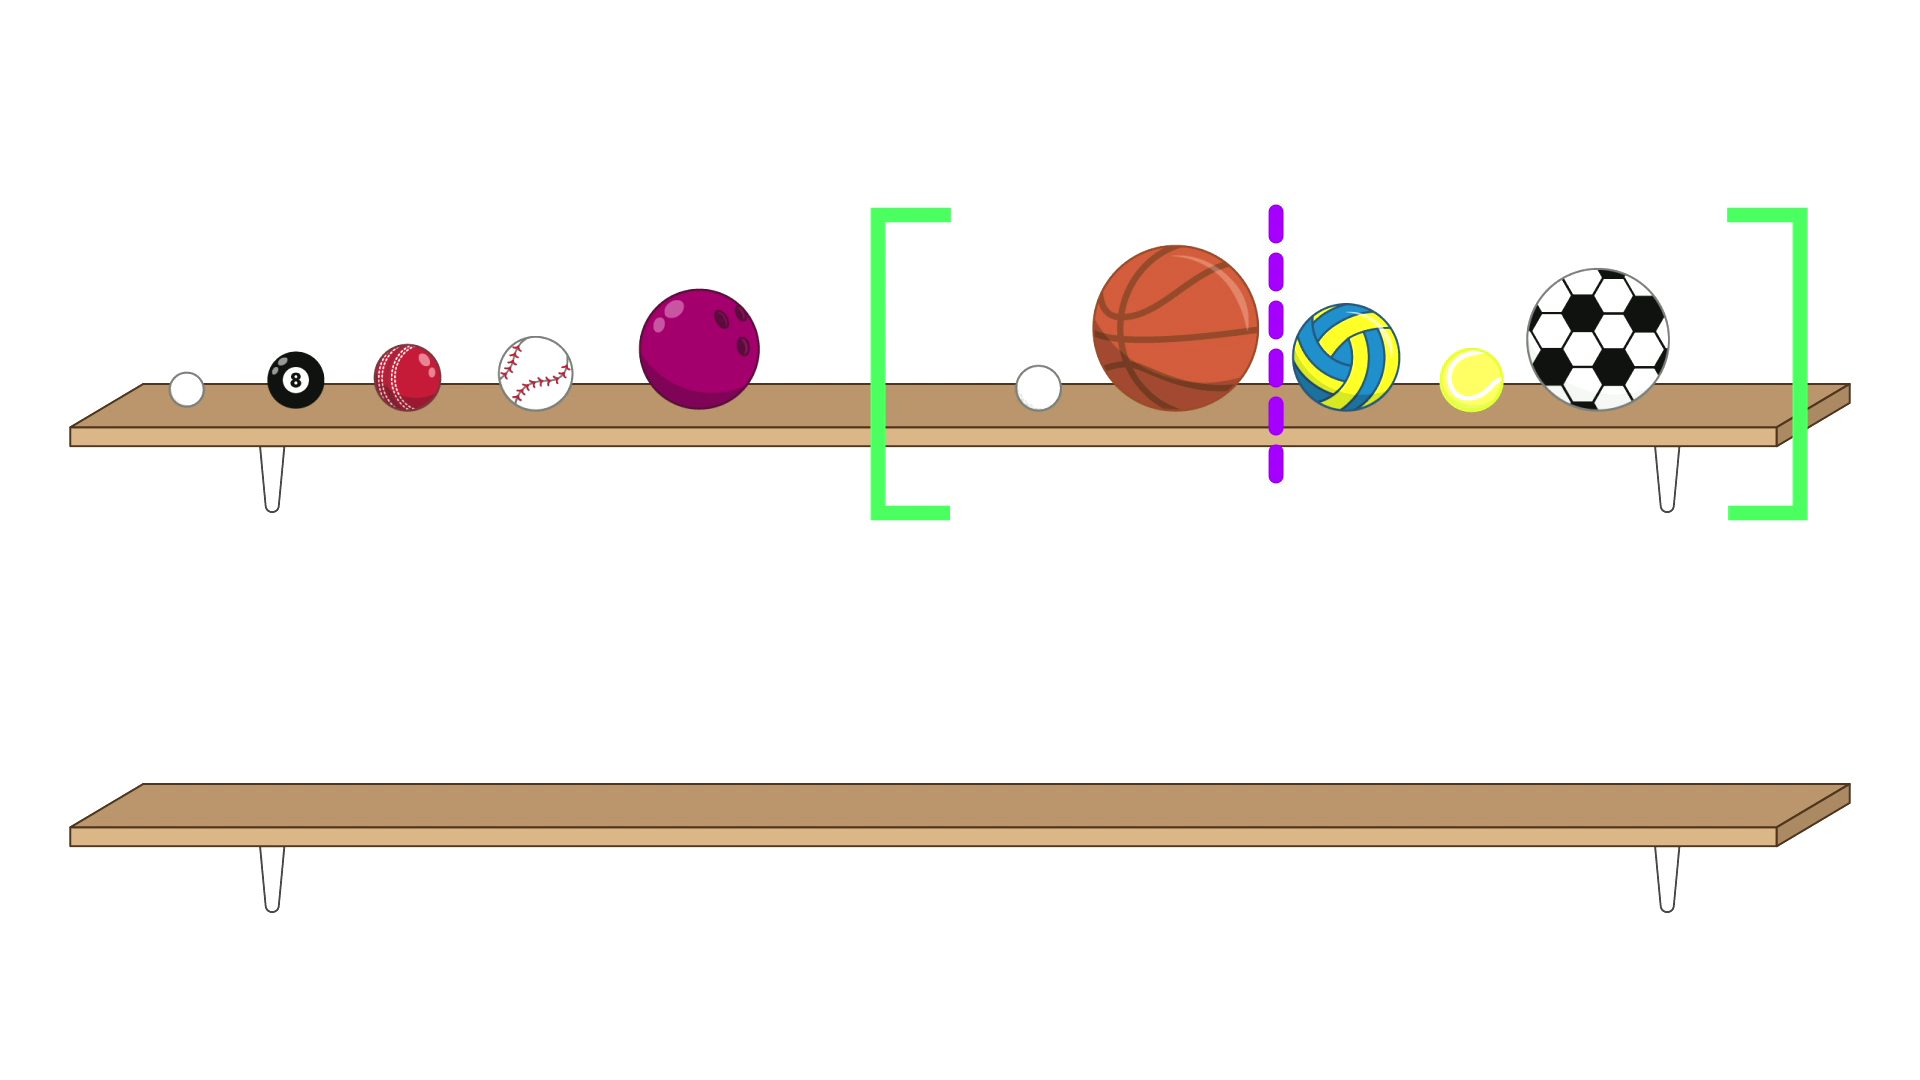 All 10 balls are on the top shelf. The balls are split into two groups, the left-most contains a ping-pong ball, a pool ball, a cricket ball, a baseball and a bowling ball. The second group is contained within a pair of green brackets, and contains five balls: a golf ball, a basketball, a netball, a tennis ball and a soccer ball. A purple dashed line between the basketball and the netball splits this set of 5 into a group of 2 and a group of 3. The bottom shelf is empty.